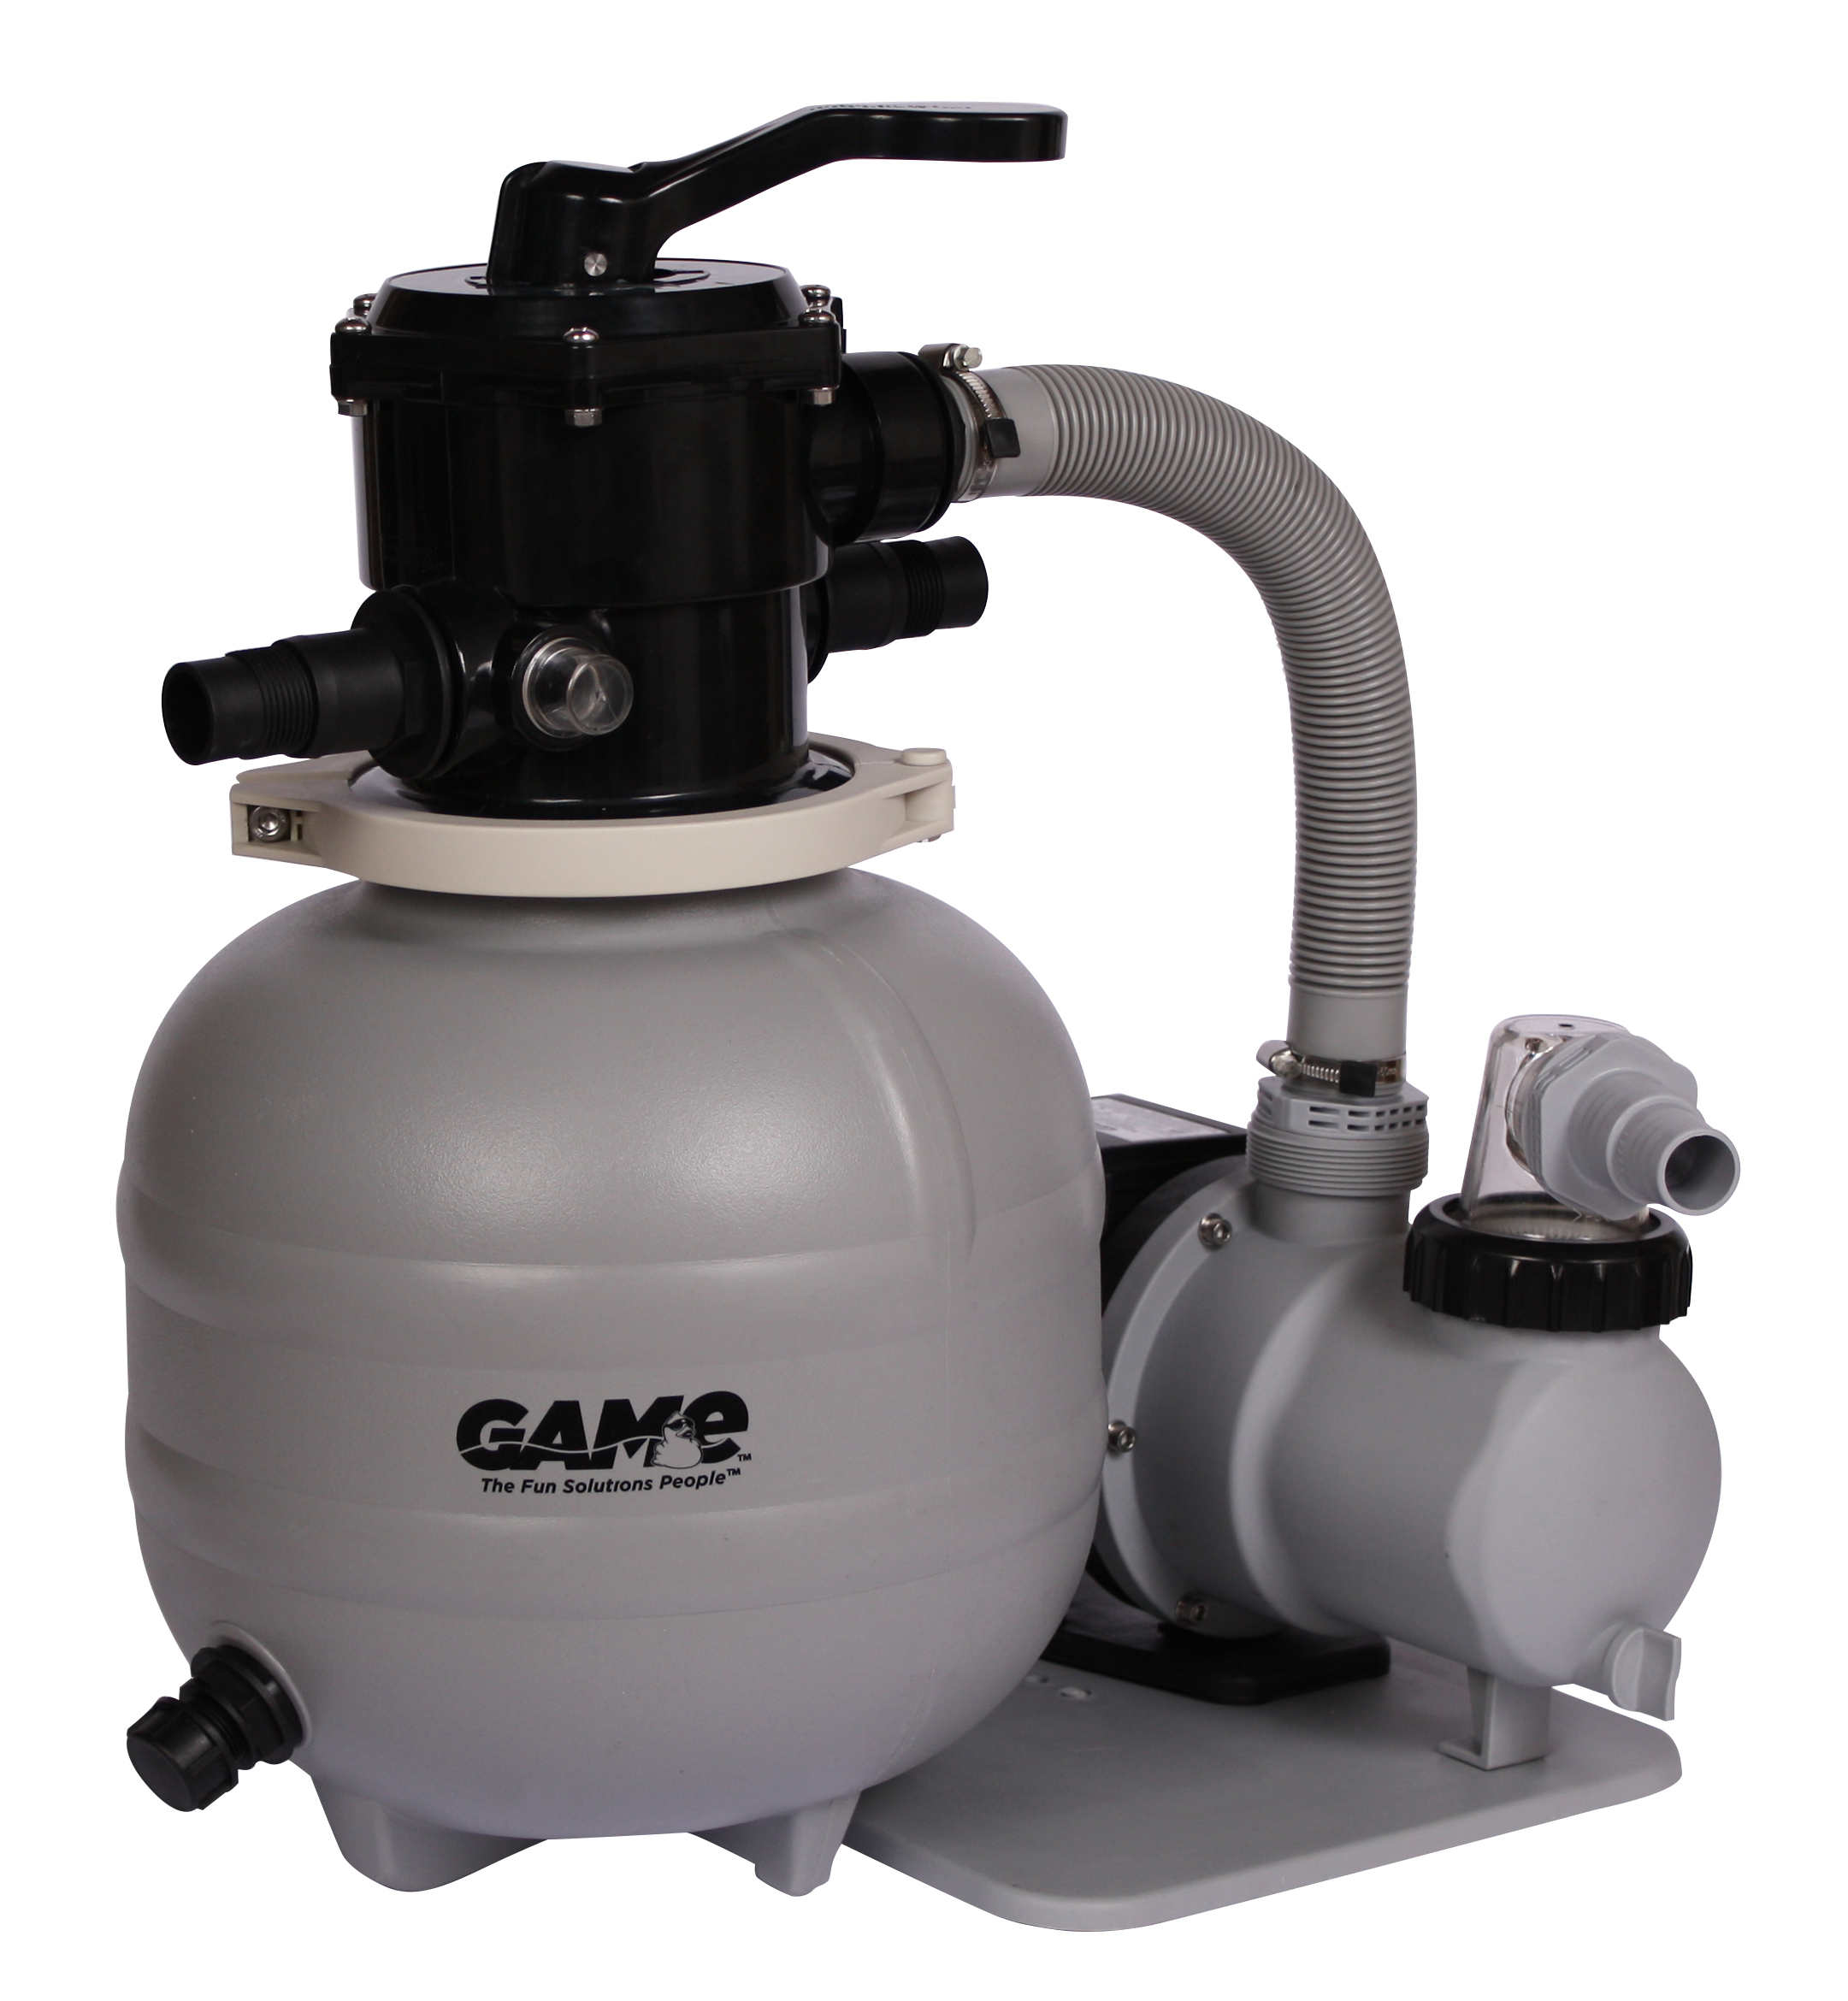 Sandpro 25 high flow pool pump and filter system for above for Pool filterpumpe obi